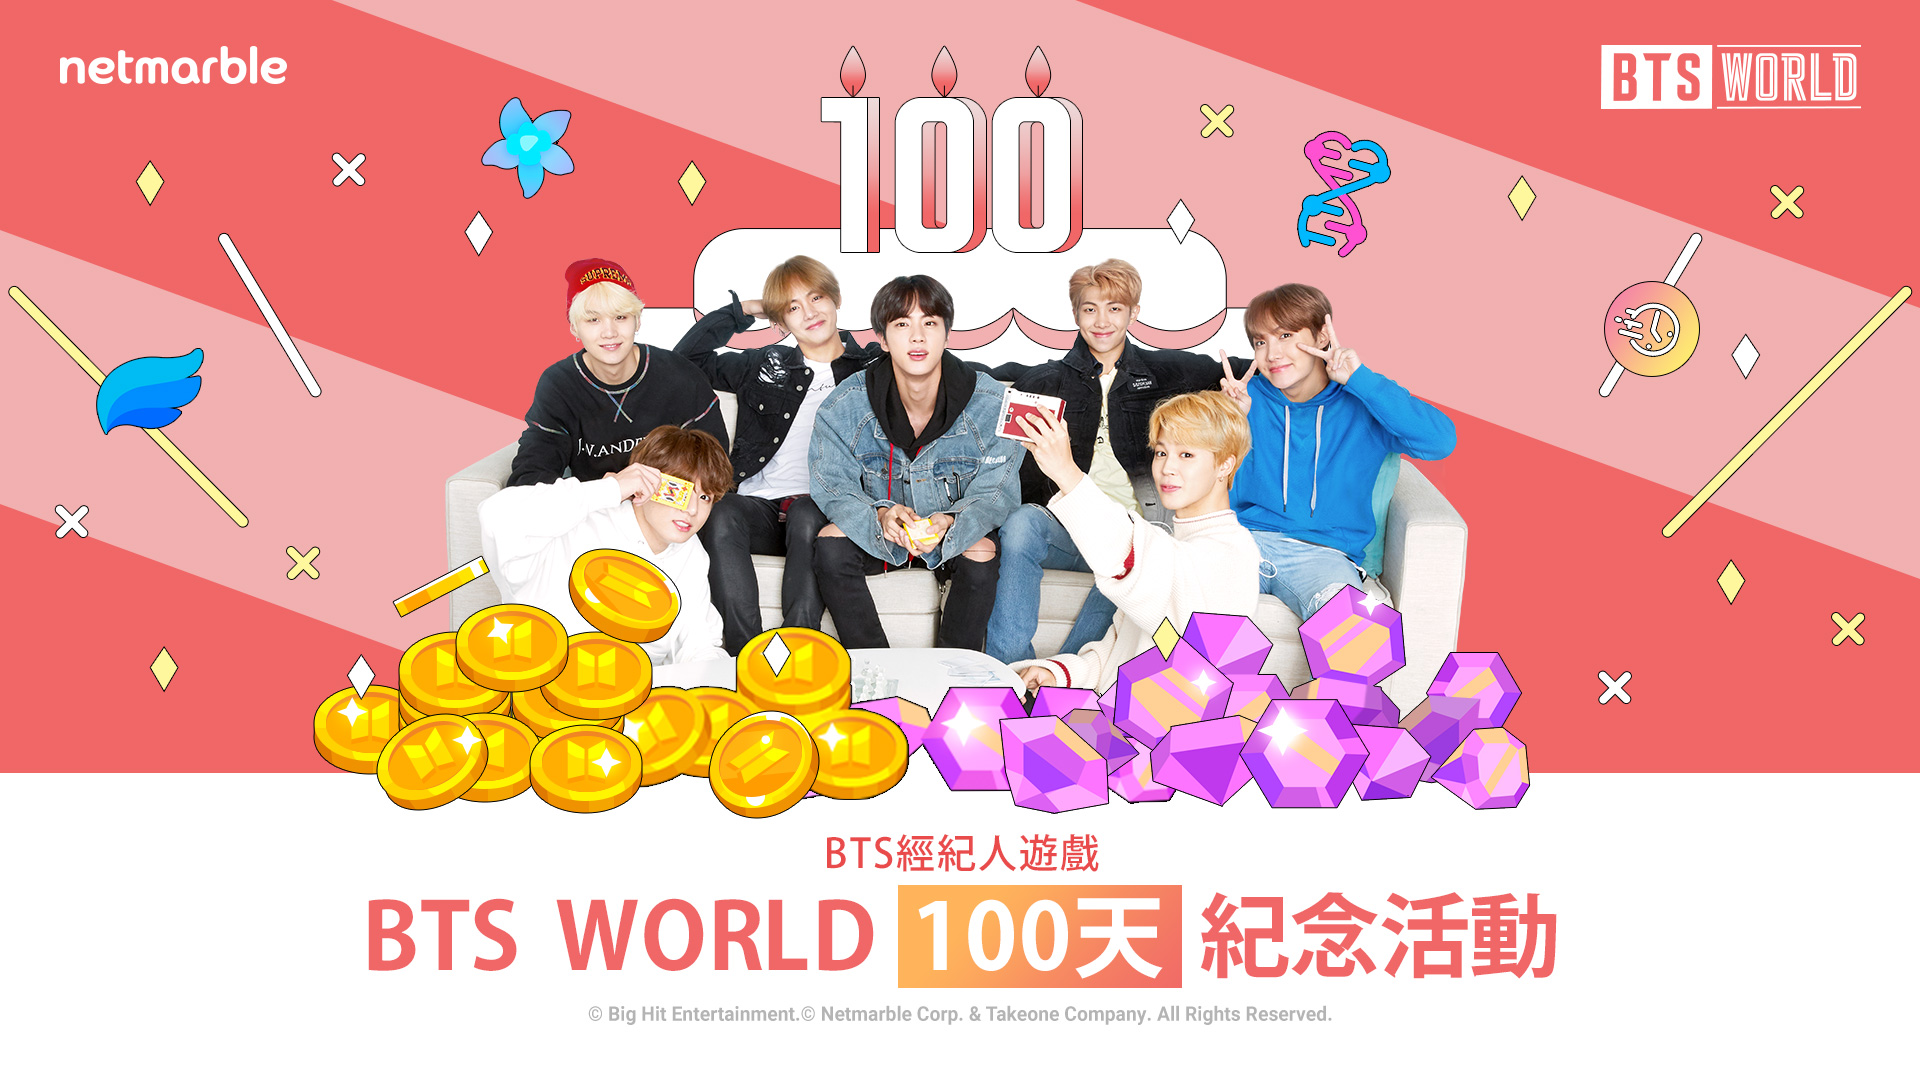 《BTS WORLD》 推出「100天紀念活動」